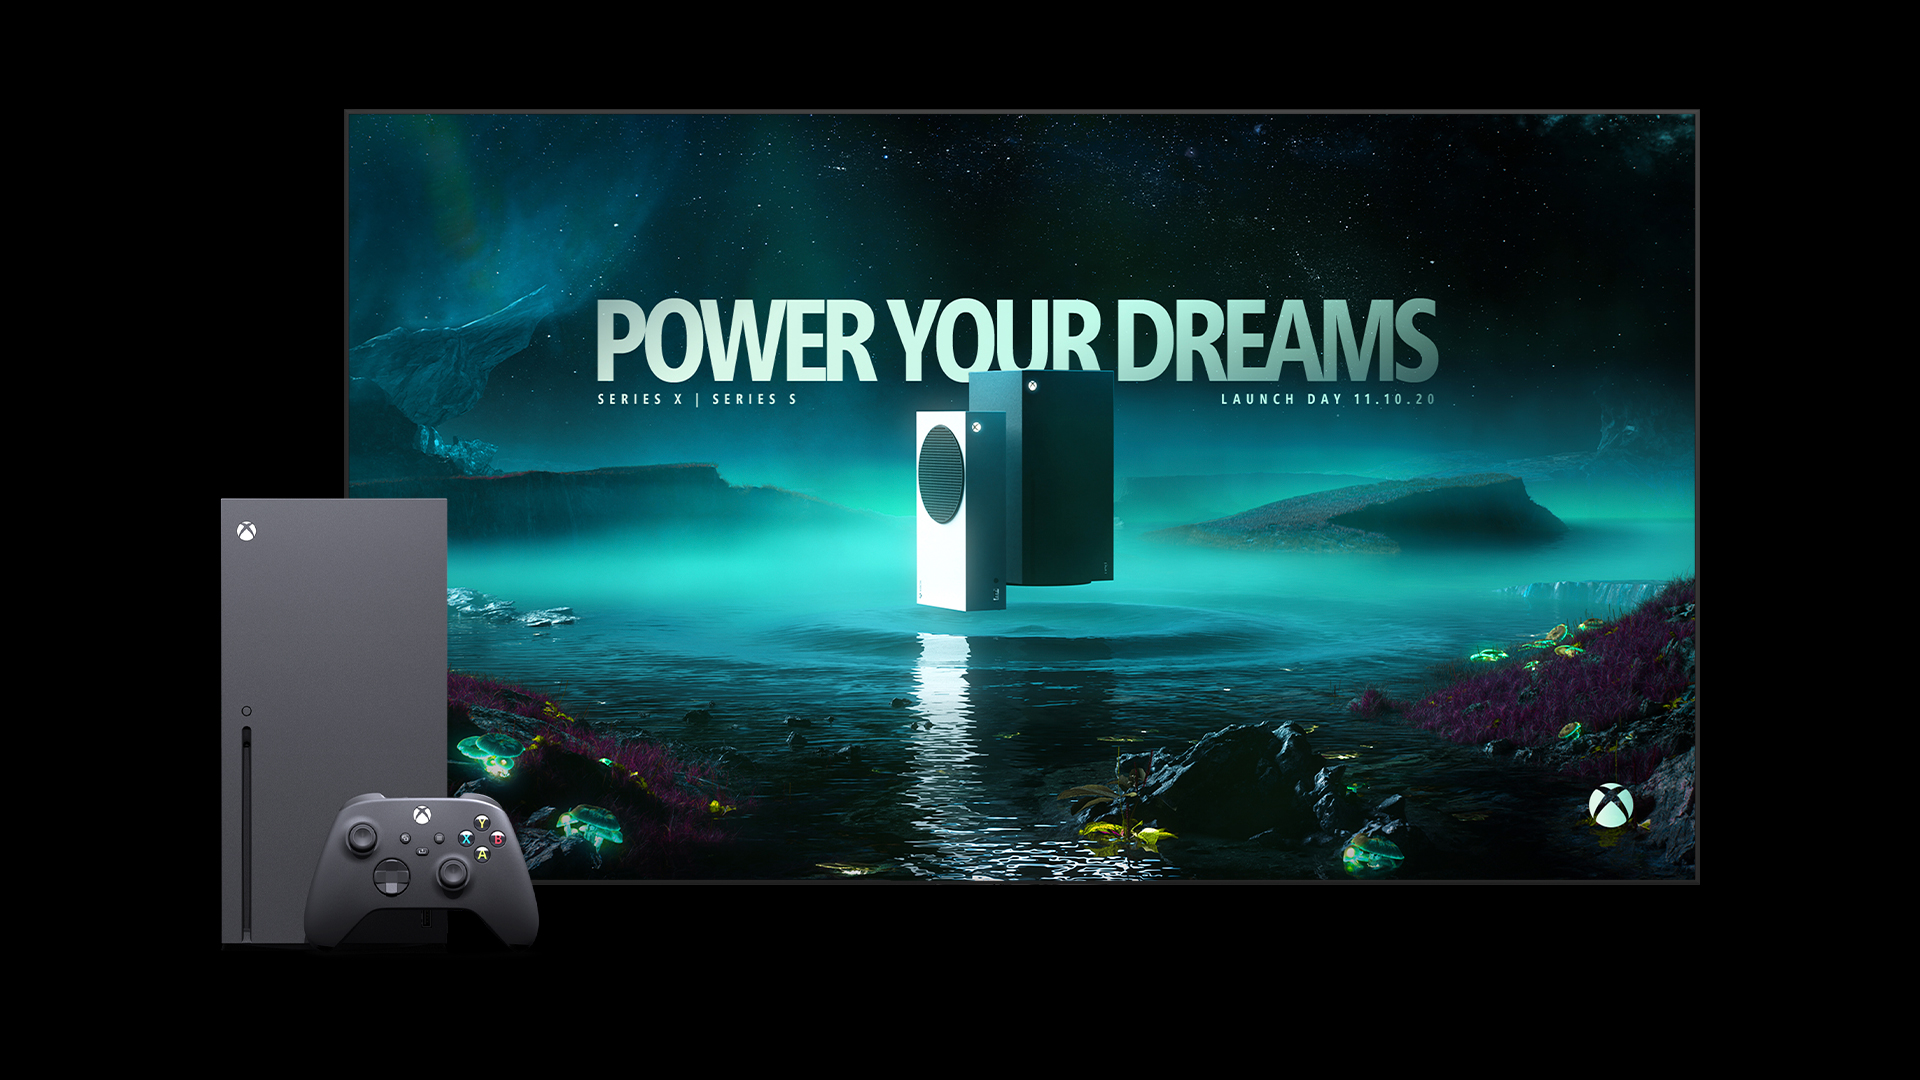 An Xbox Series X in front of a screen displaying the Launch Day key visual